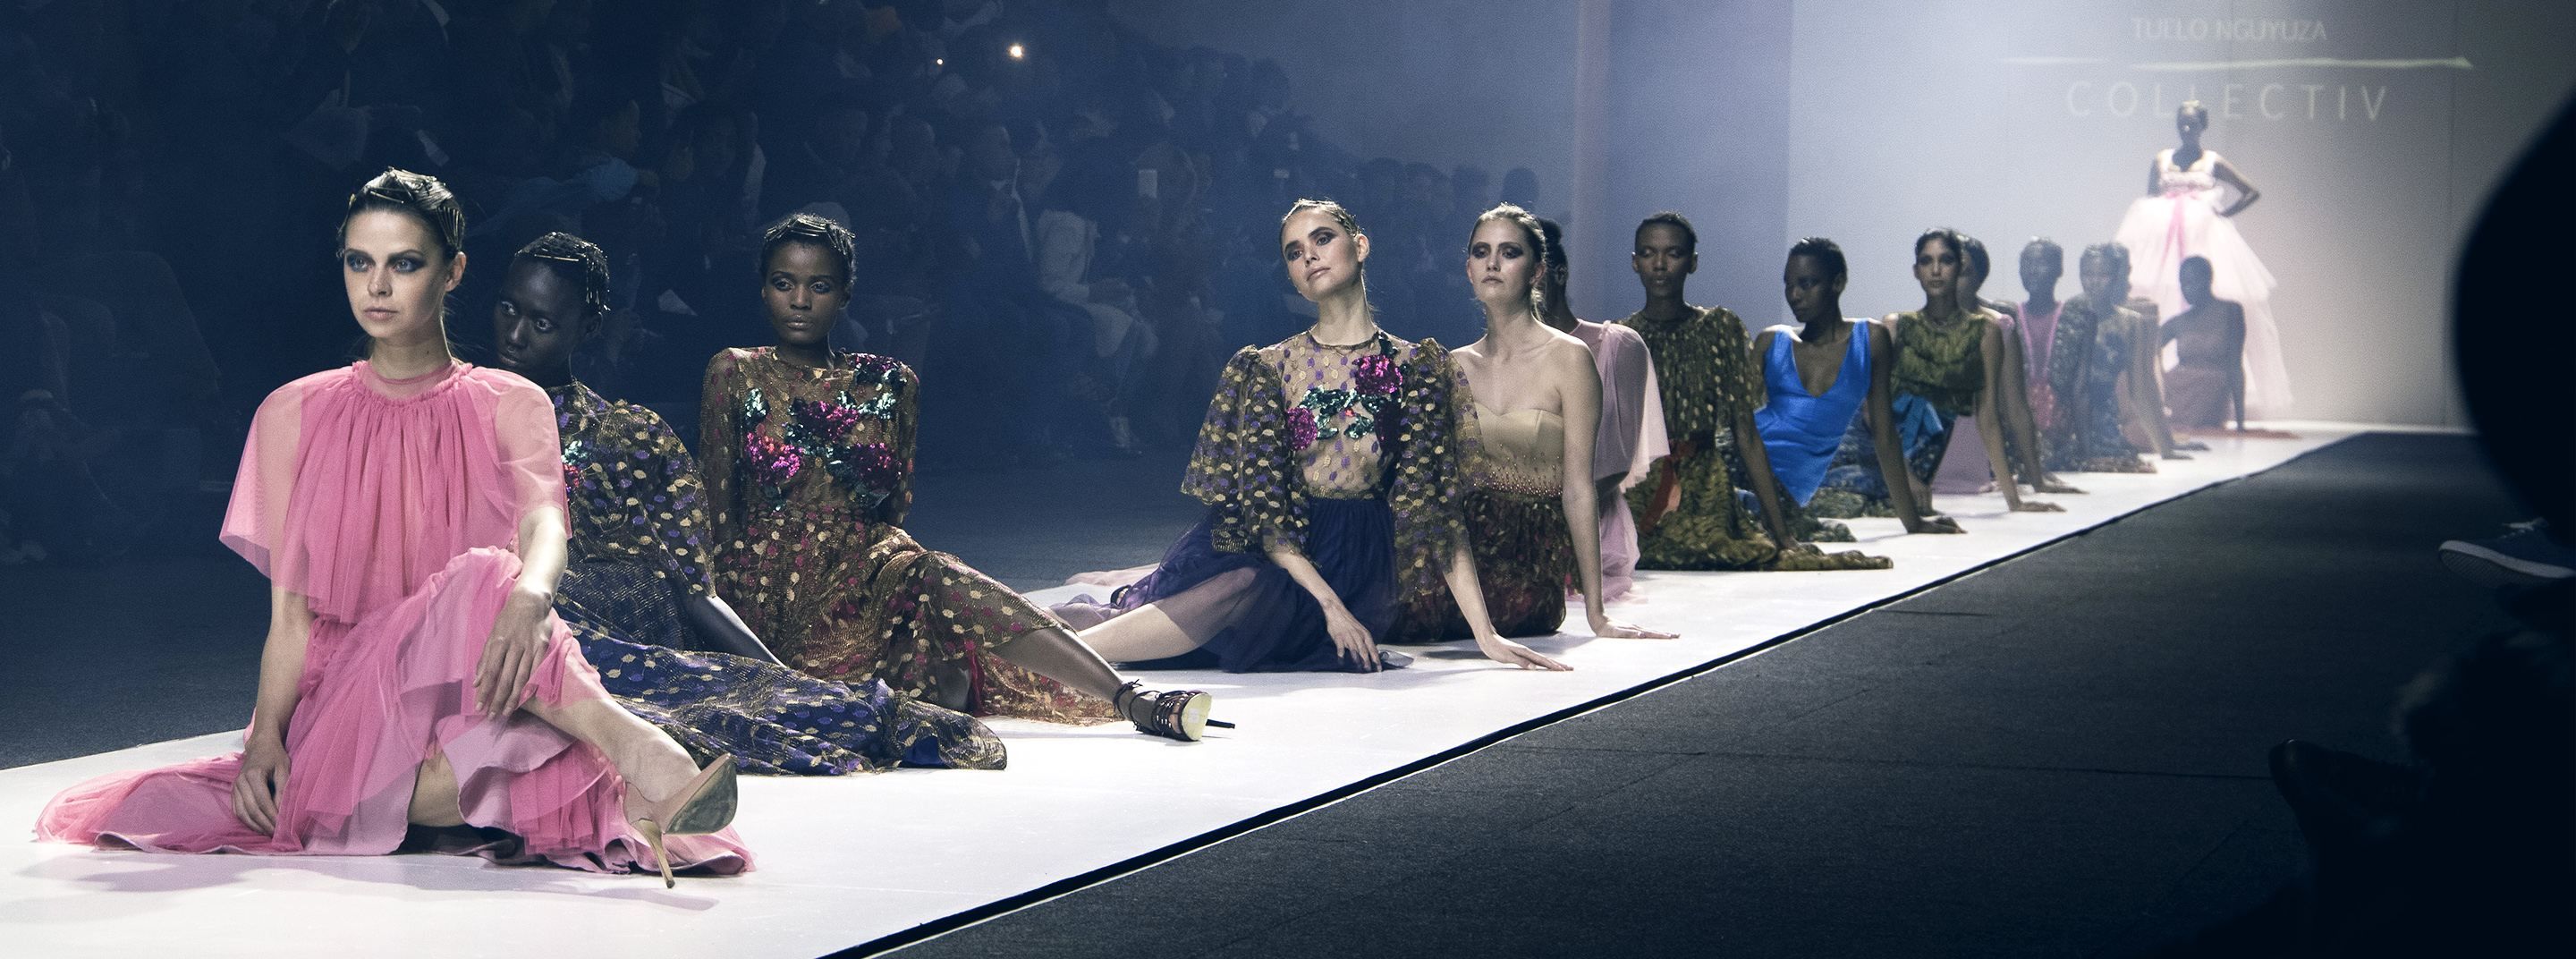 The Best from MBFWJ17